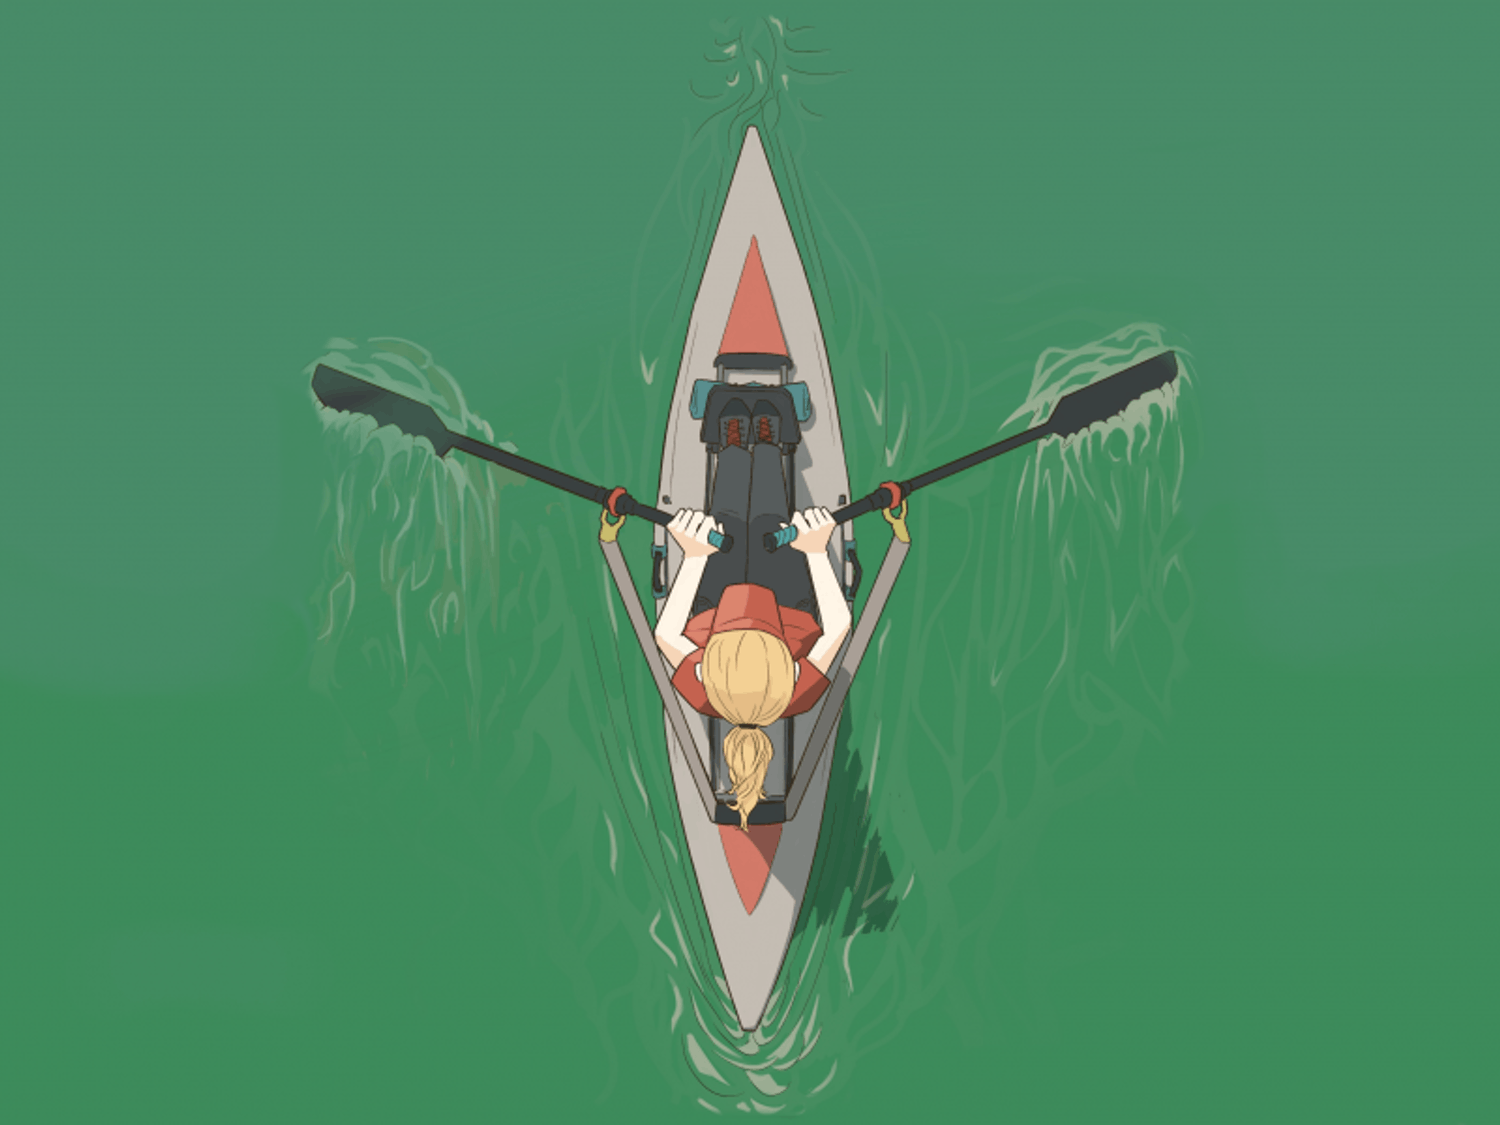 rowing_graphic.png